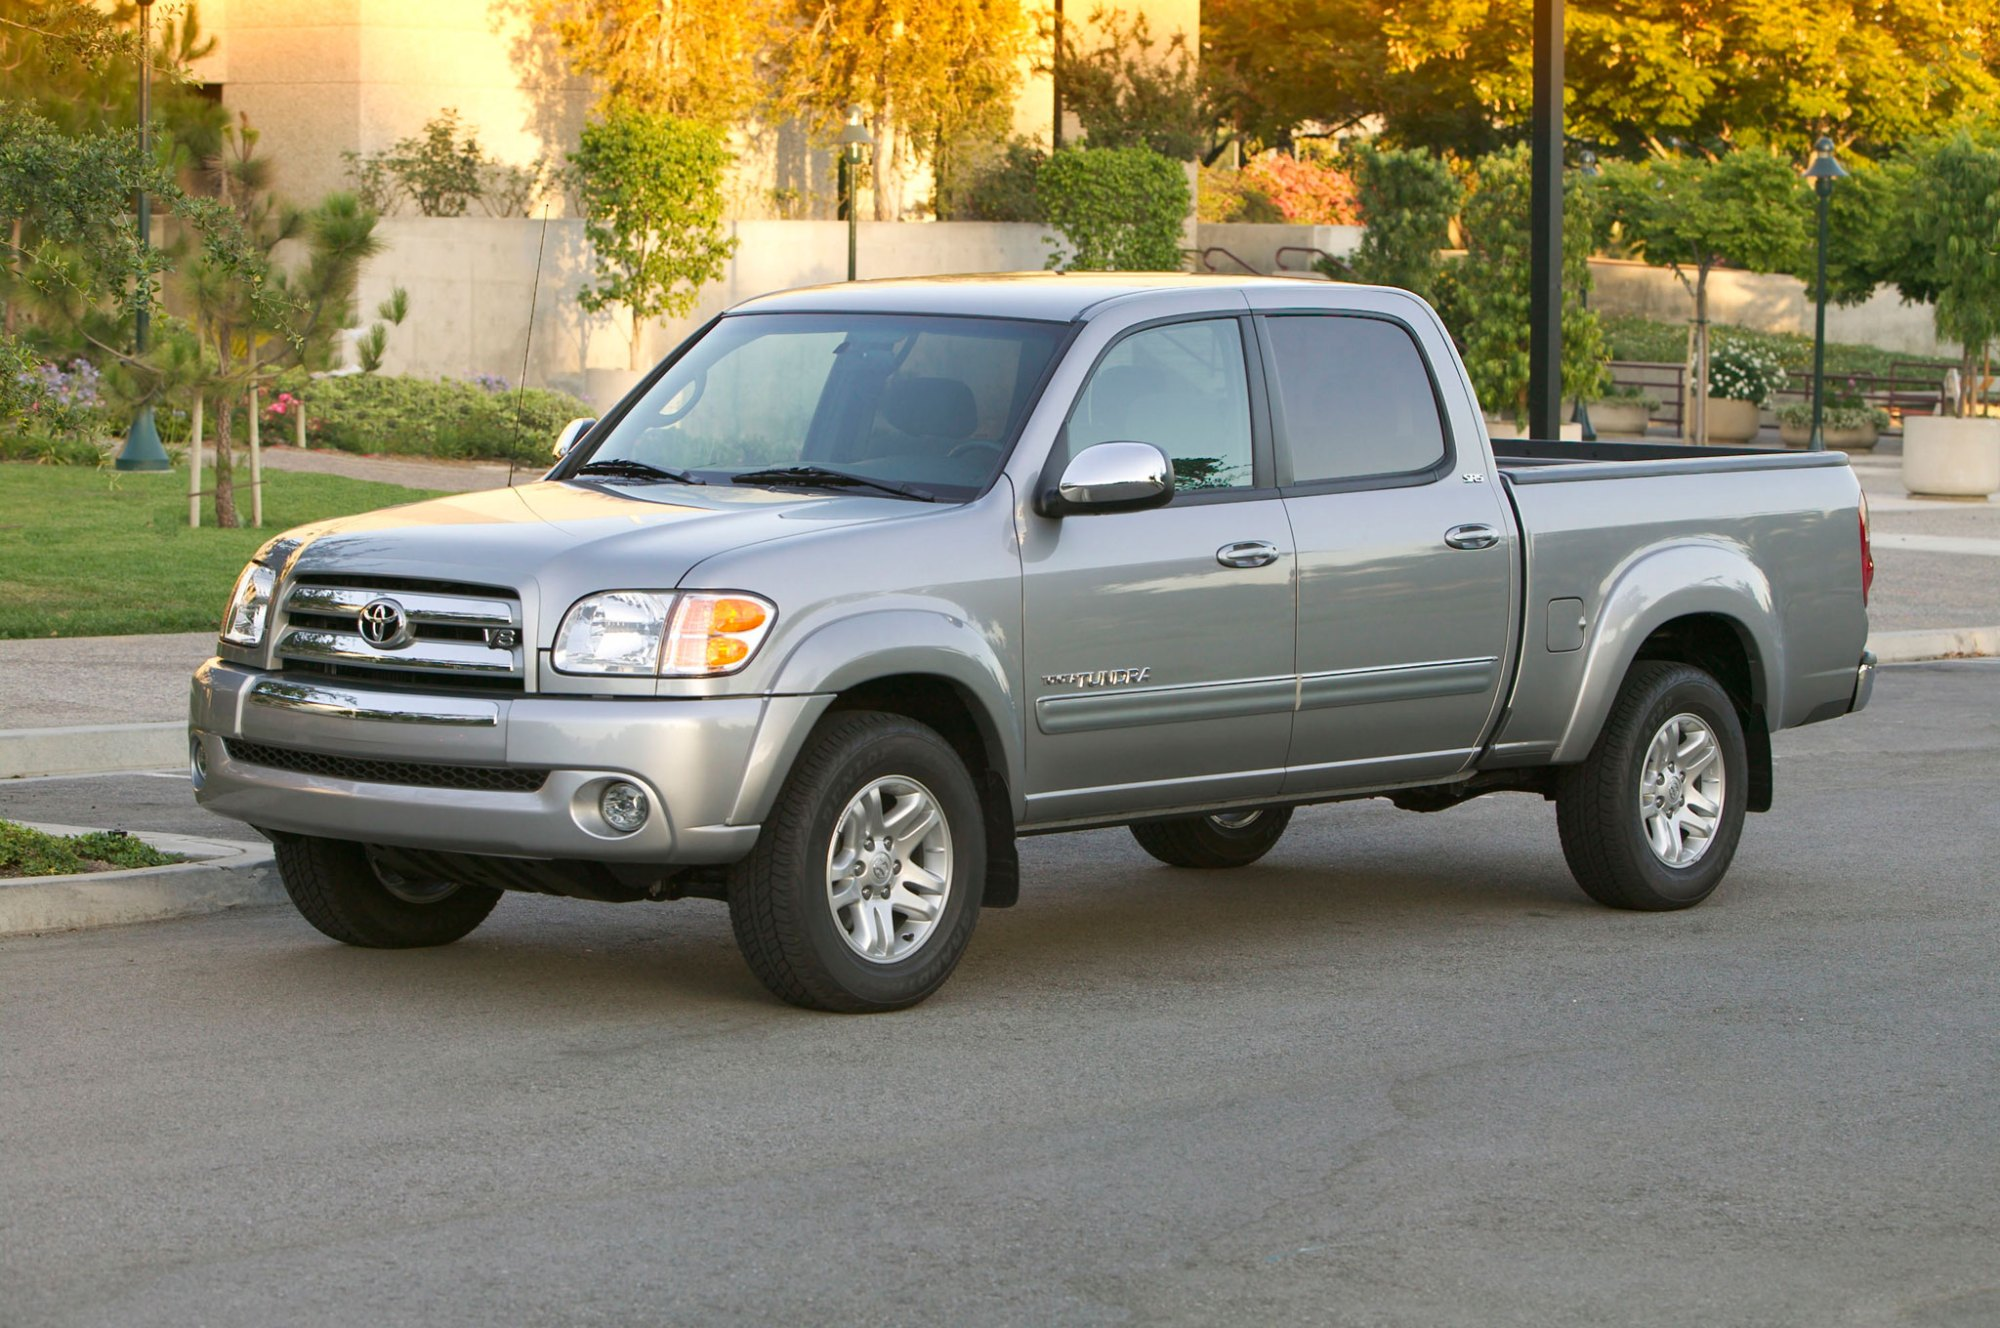 hight resolution of 2004 toyota tundra double cab left front angle